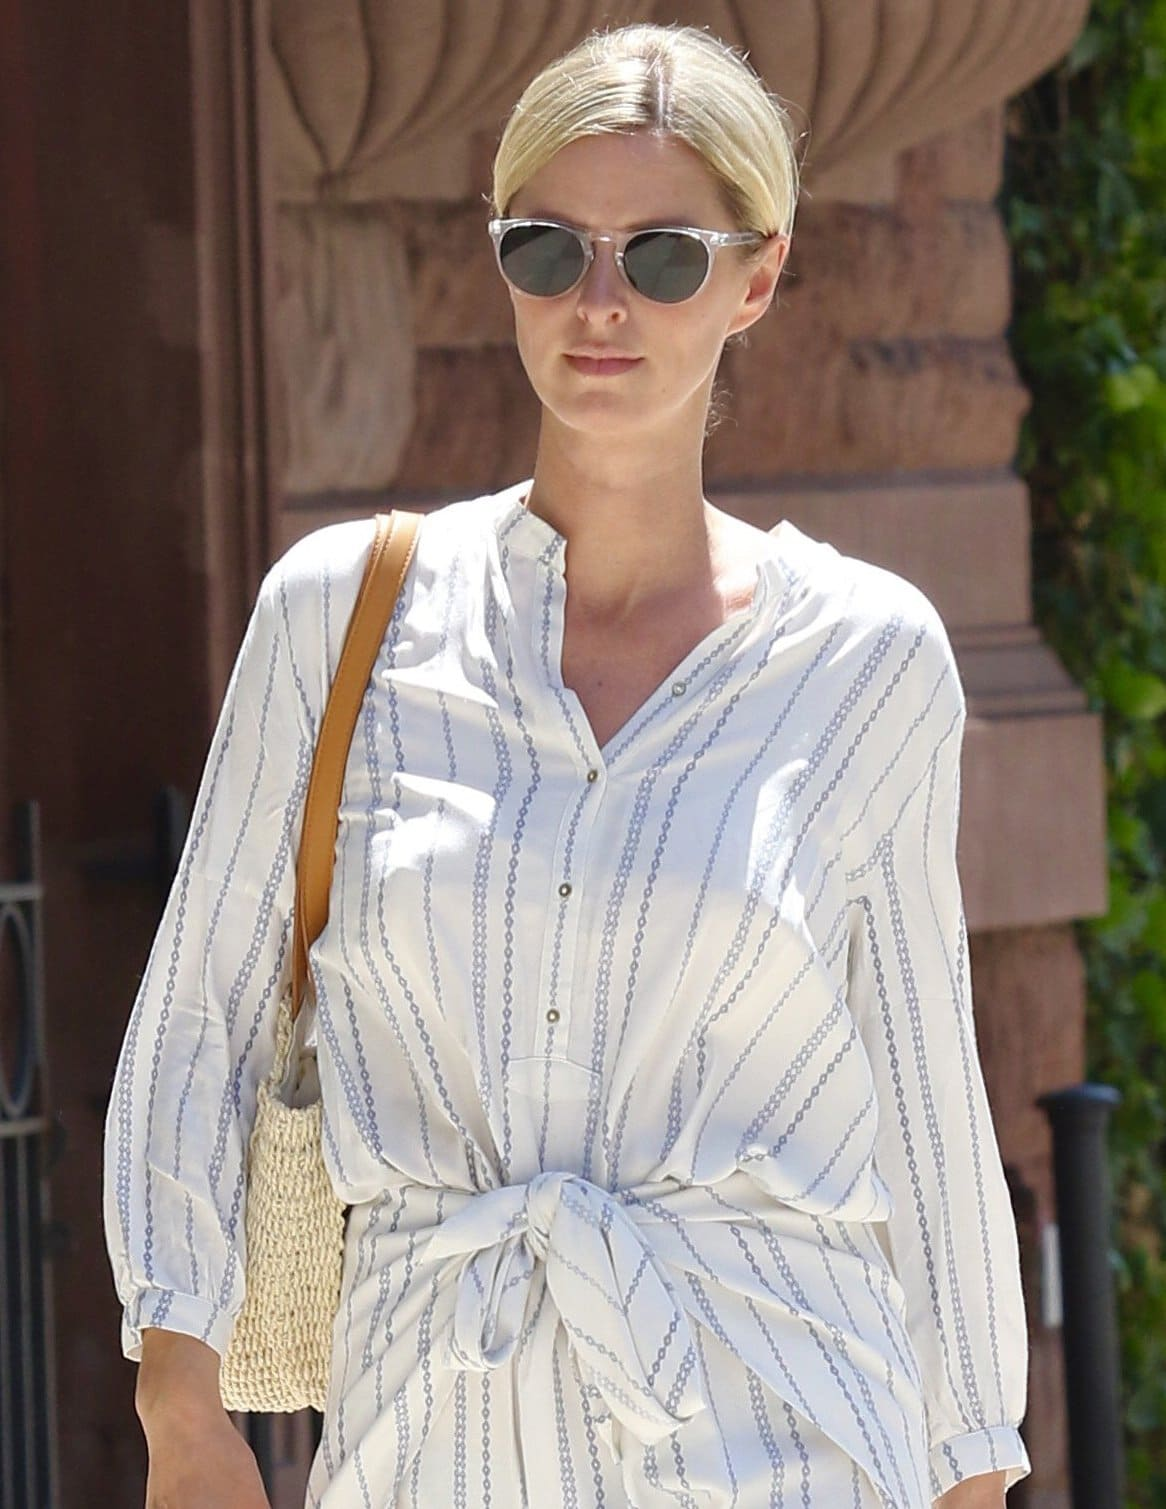 Nicky Hilton wears an off-center low bun with barely-there makeup